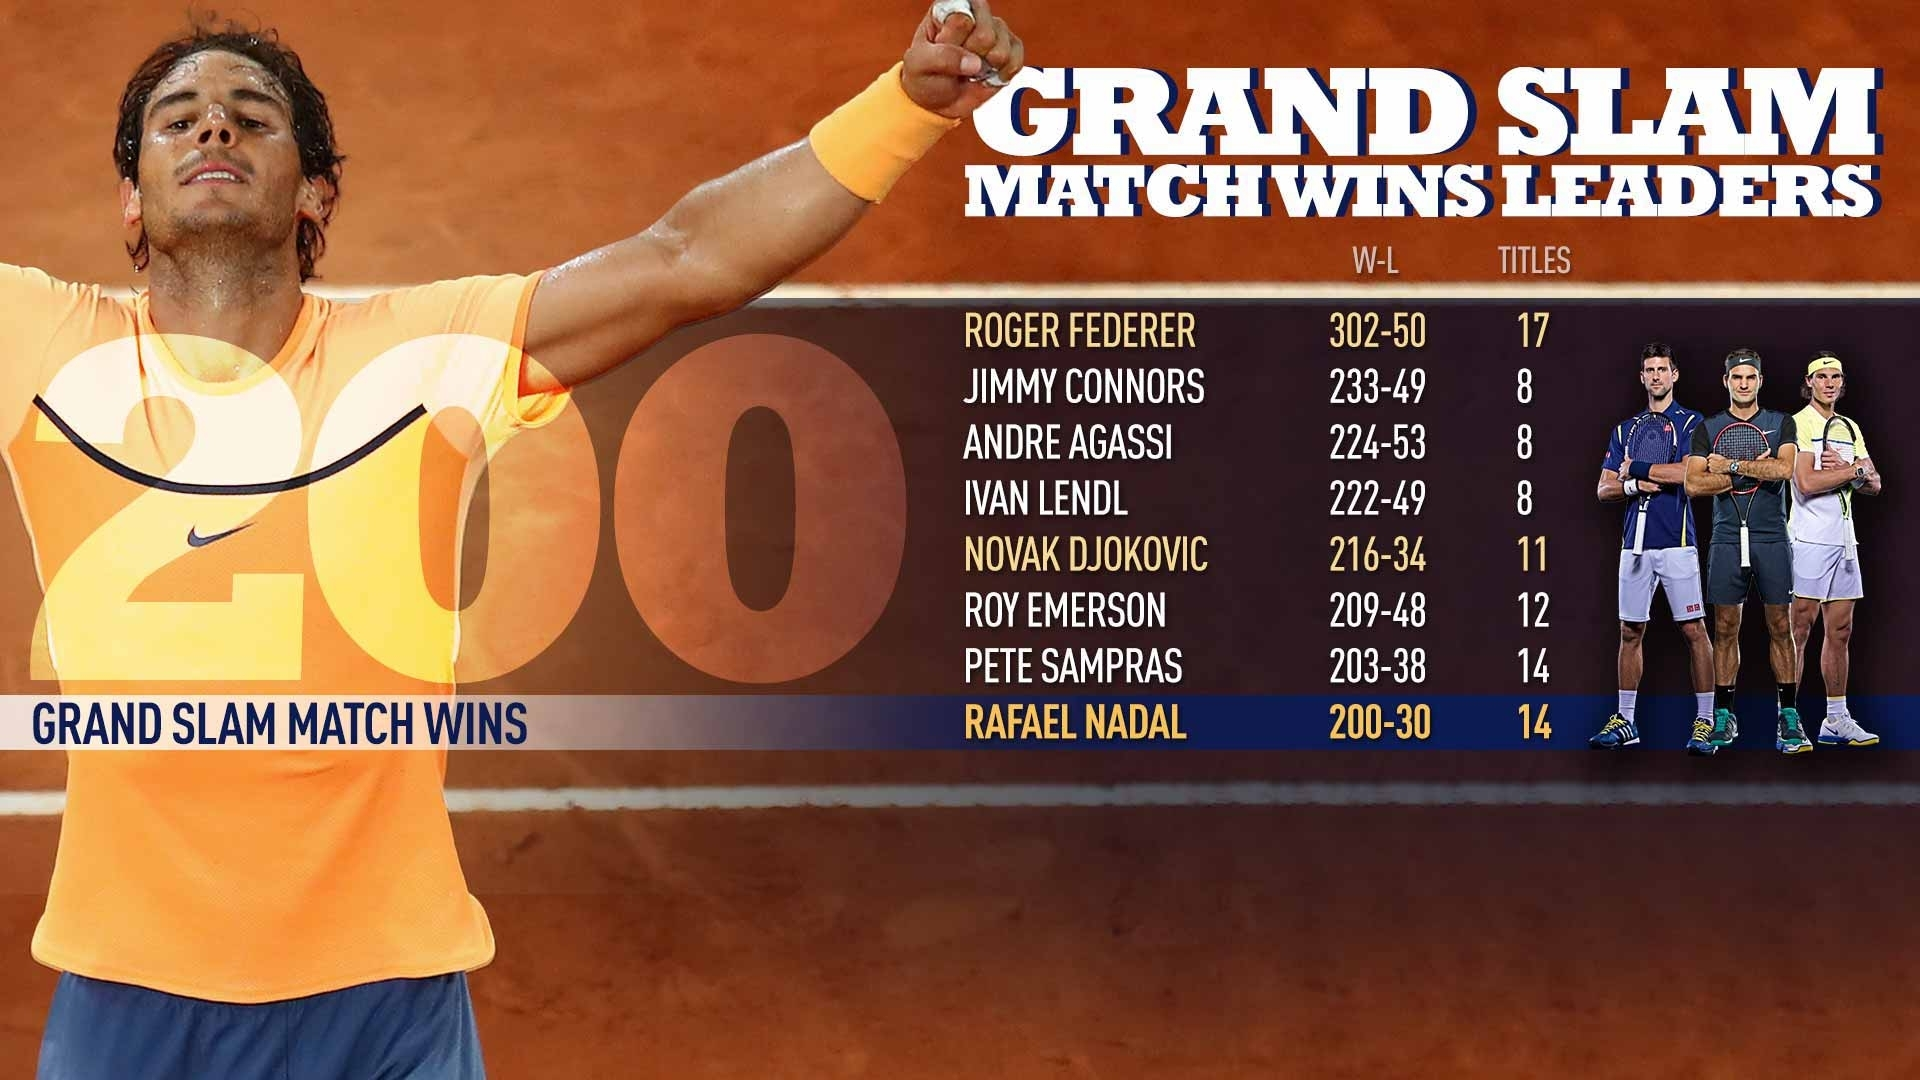 Nadal Records 200Th Grand Slam Match Win | Atp Tour | Tennis